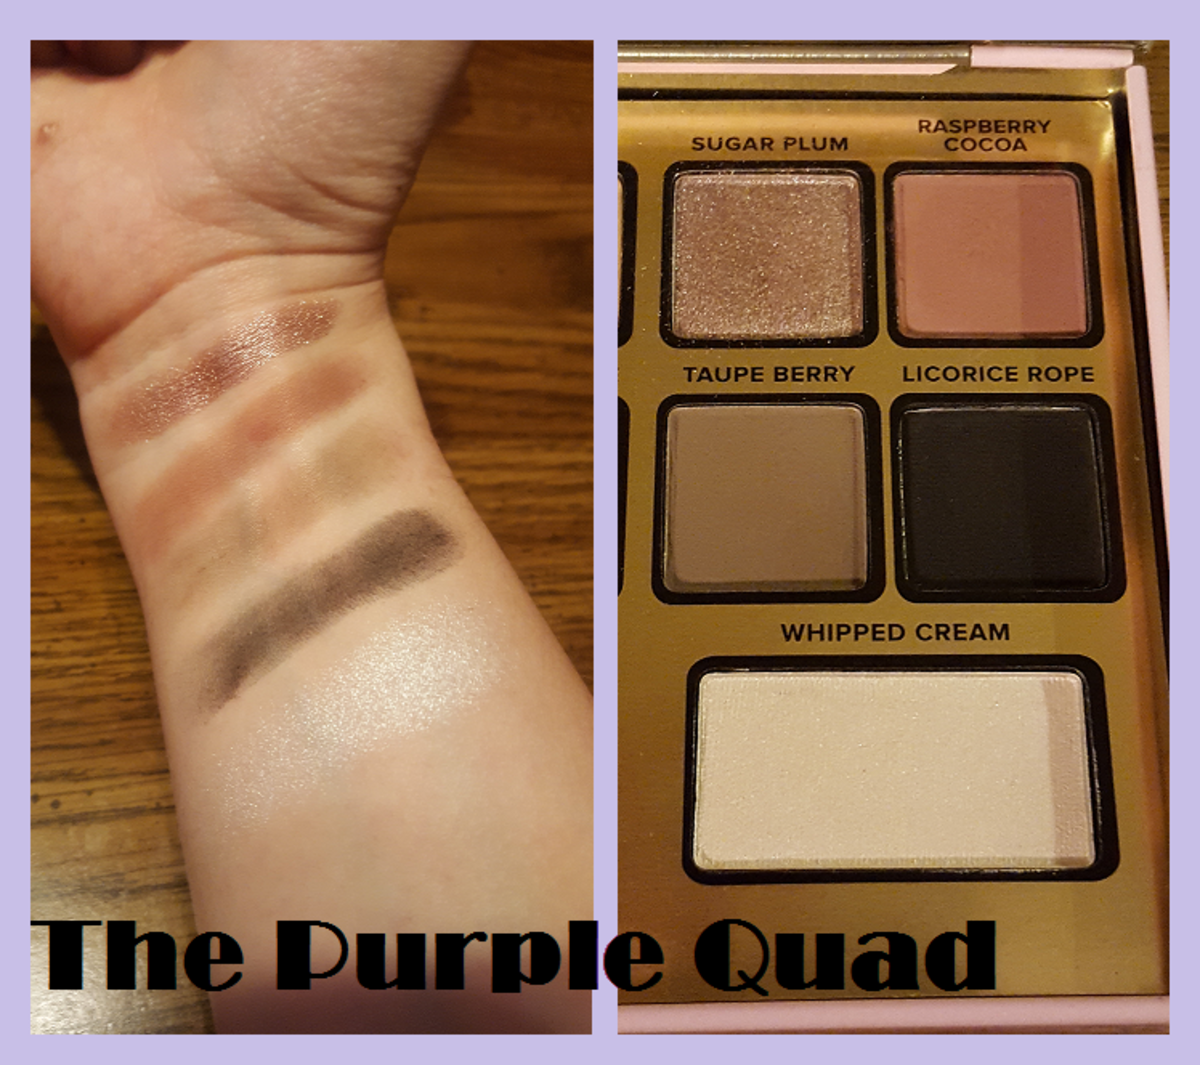 Finger swatches of the purple quad and highlight below it. From top to bottom: Sugar Plum, Raspberry Cocoa, Taupe Berry, Licorice Rope, and Whipped Cream.